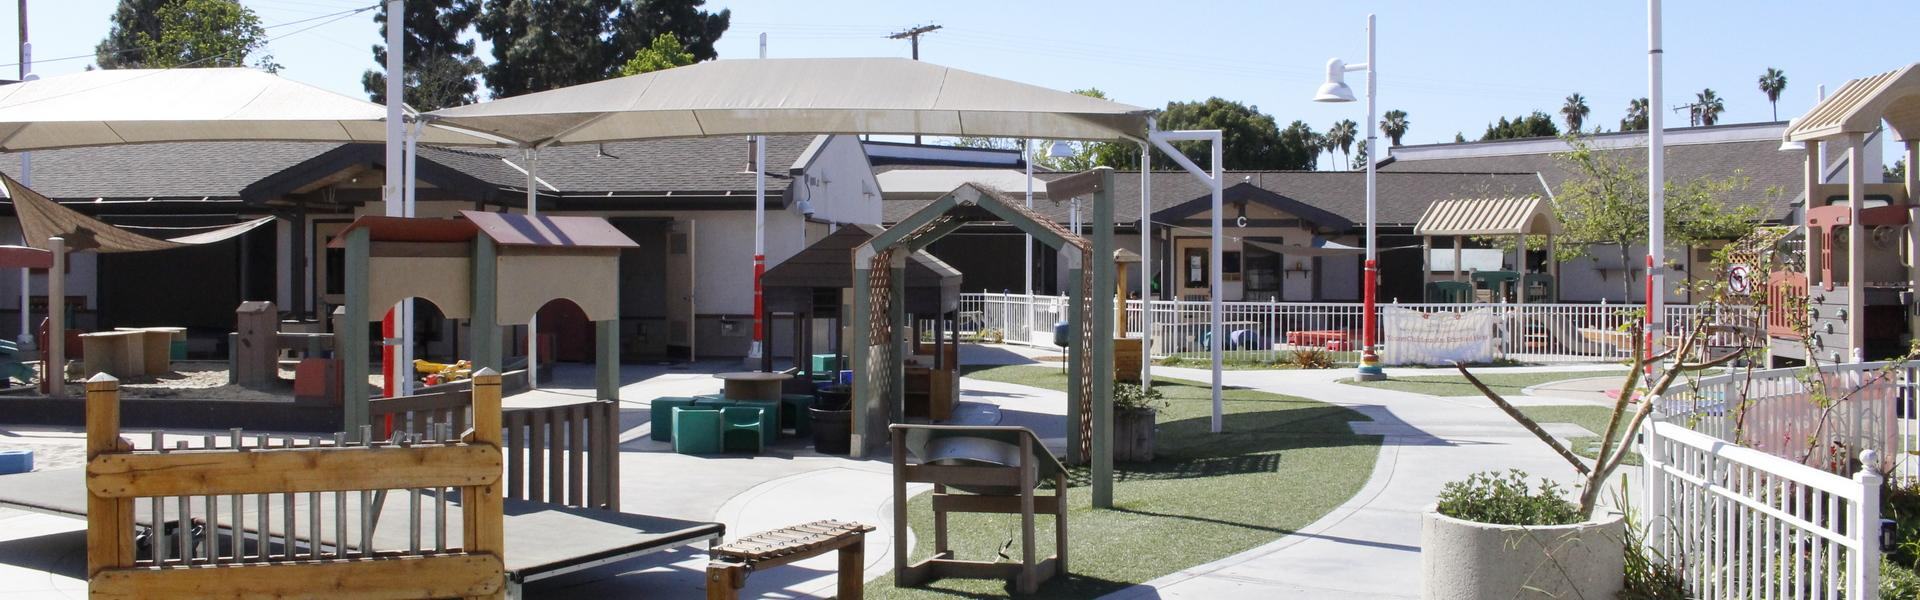 The playground inside the Child Development Center.